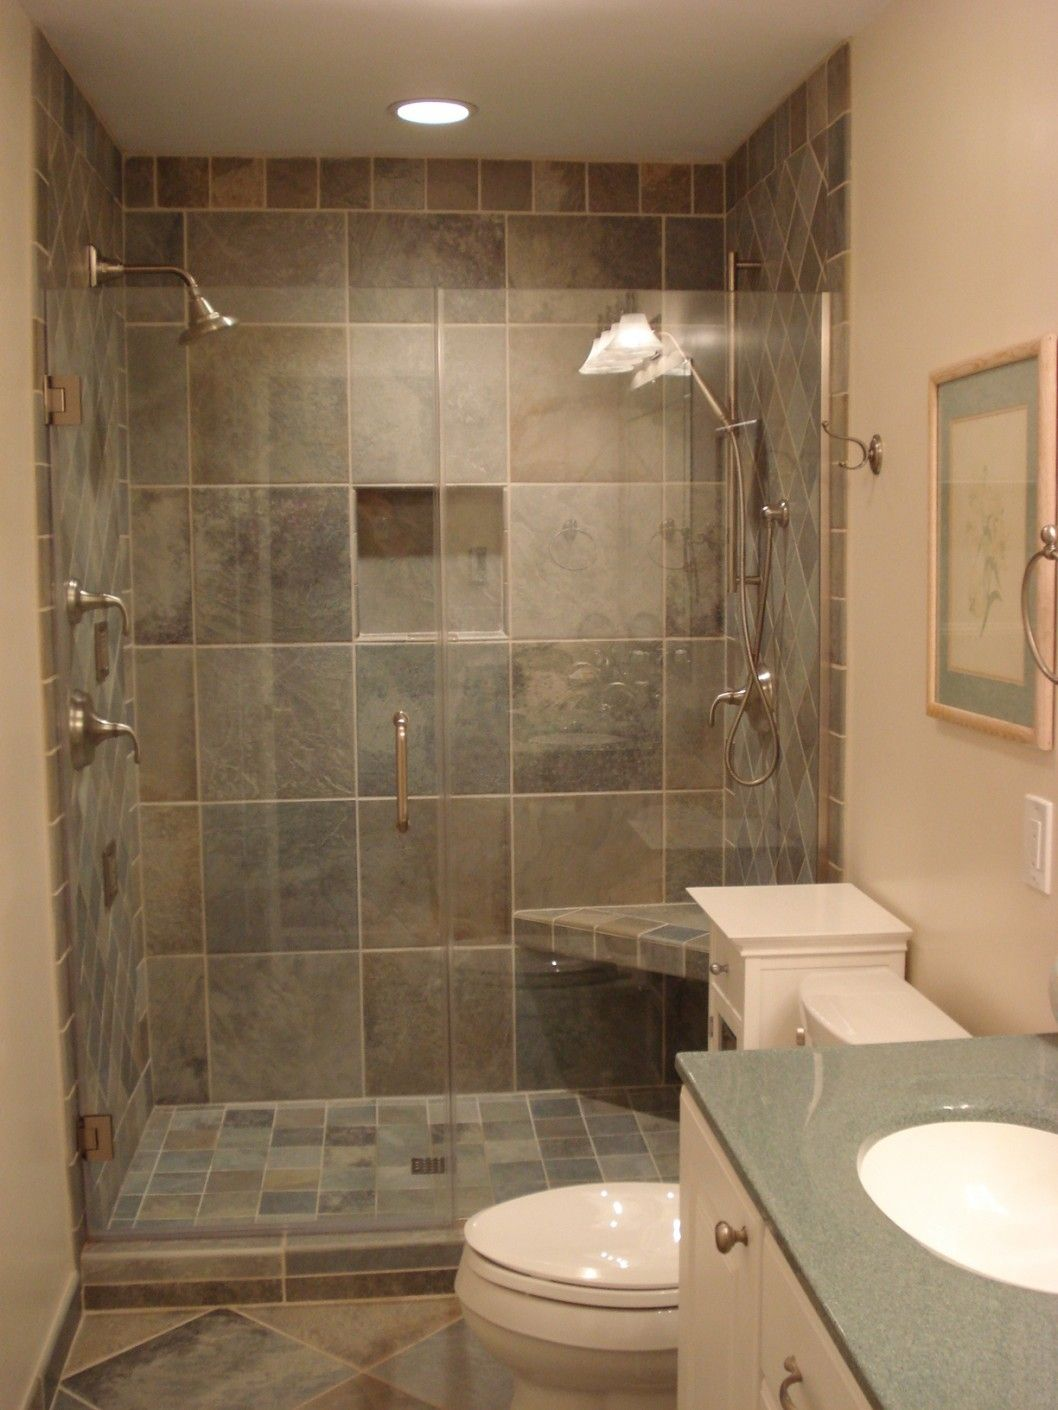 Best of ideas remodel bathroom tub and how to remodel my for Best small bathroom remodels